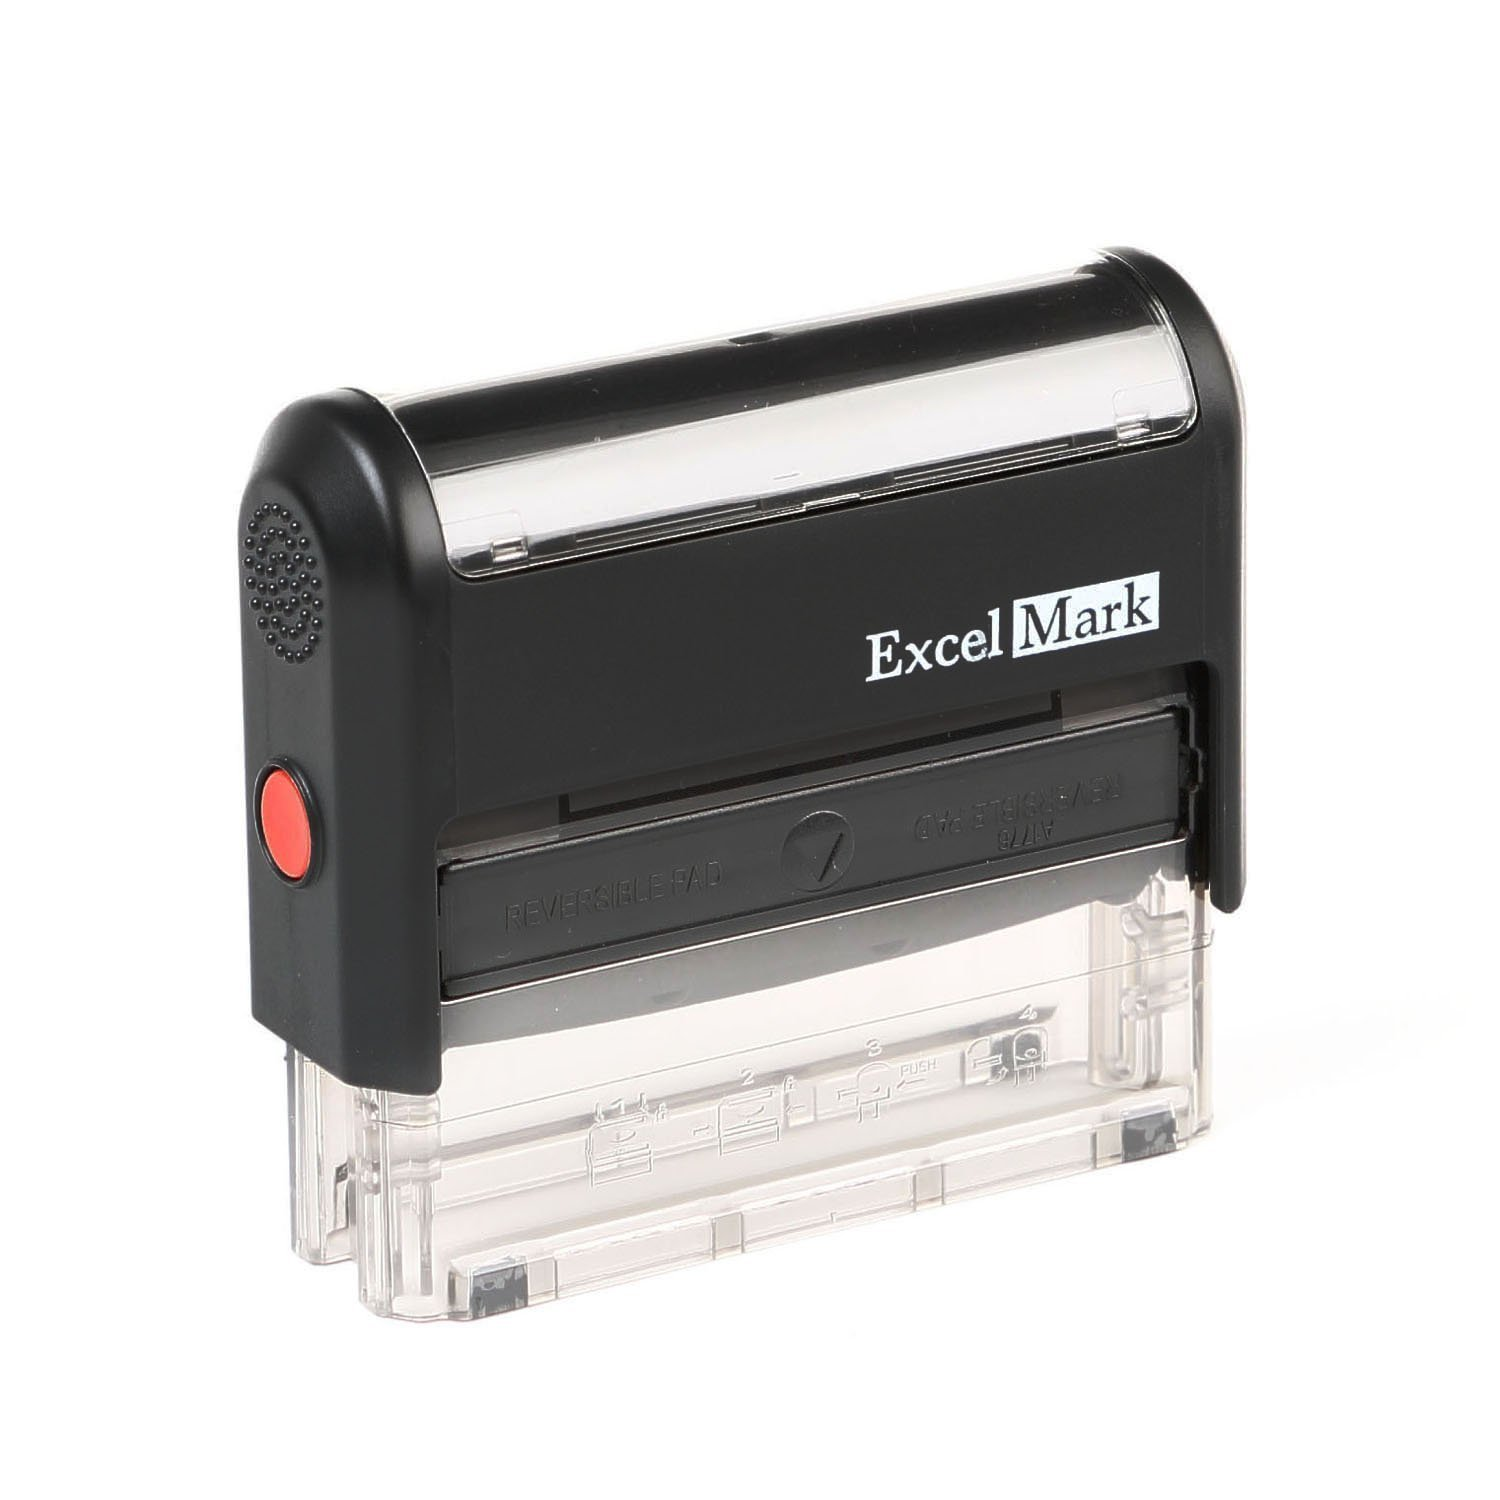 ExcelMark Custom 1 Line Self Inking Rubber Stamp - Home or Office - A1069